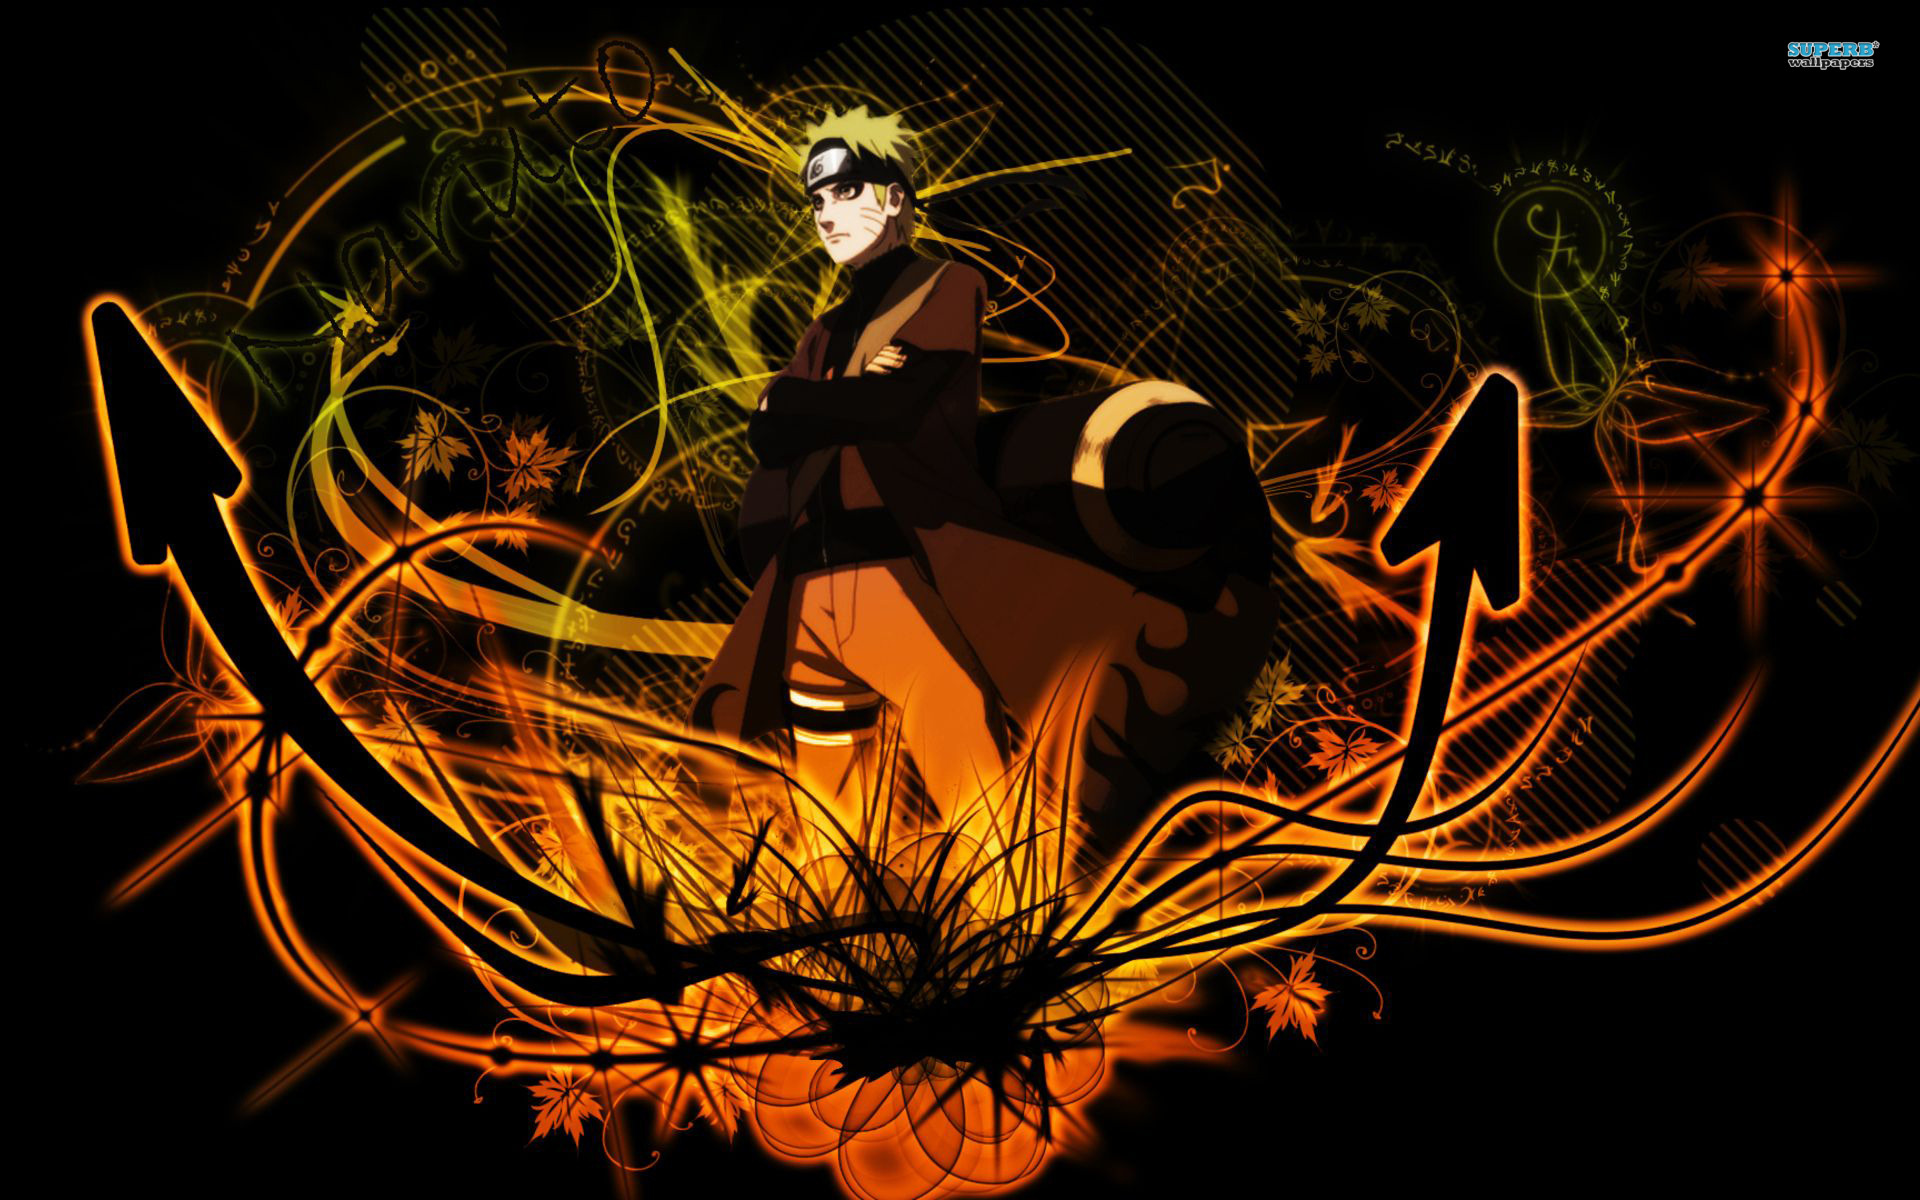 Wallpaper Naruto 3d Posted By Ethan Anderson